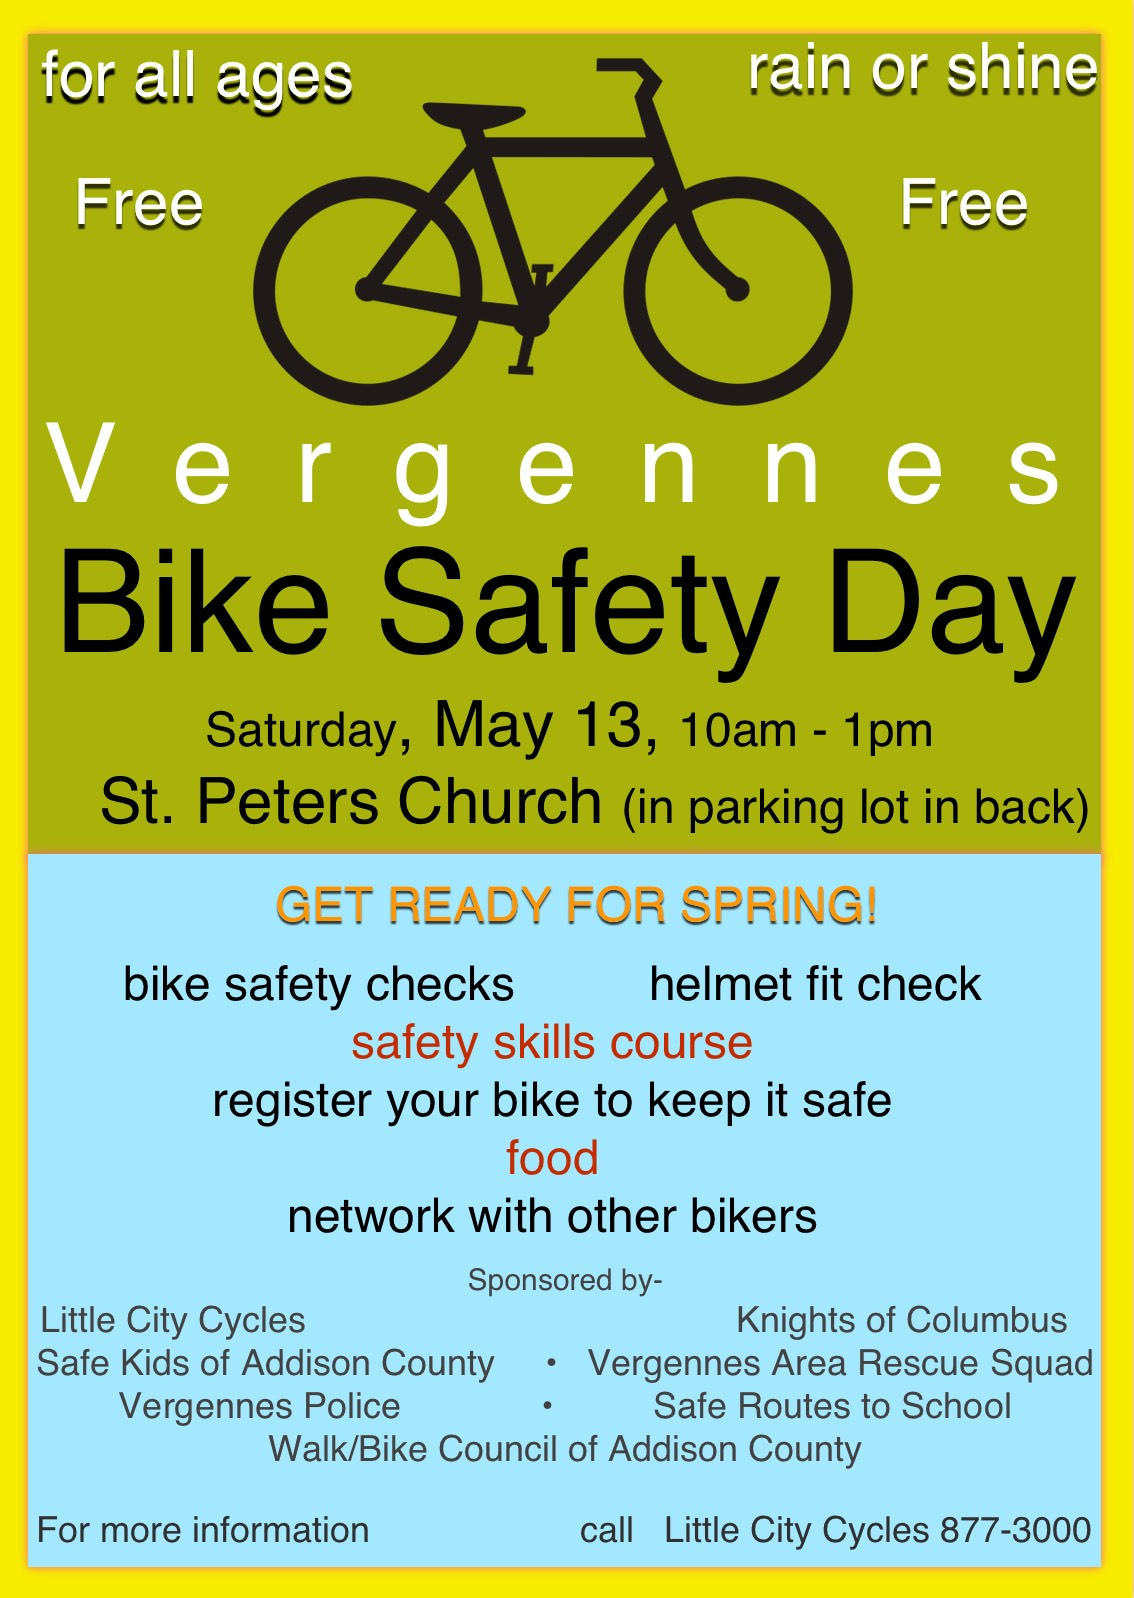 bike_safety_day_poster_small_jpg.jpg